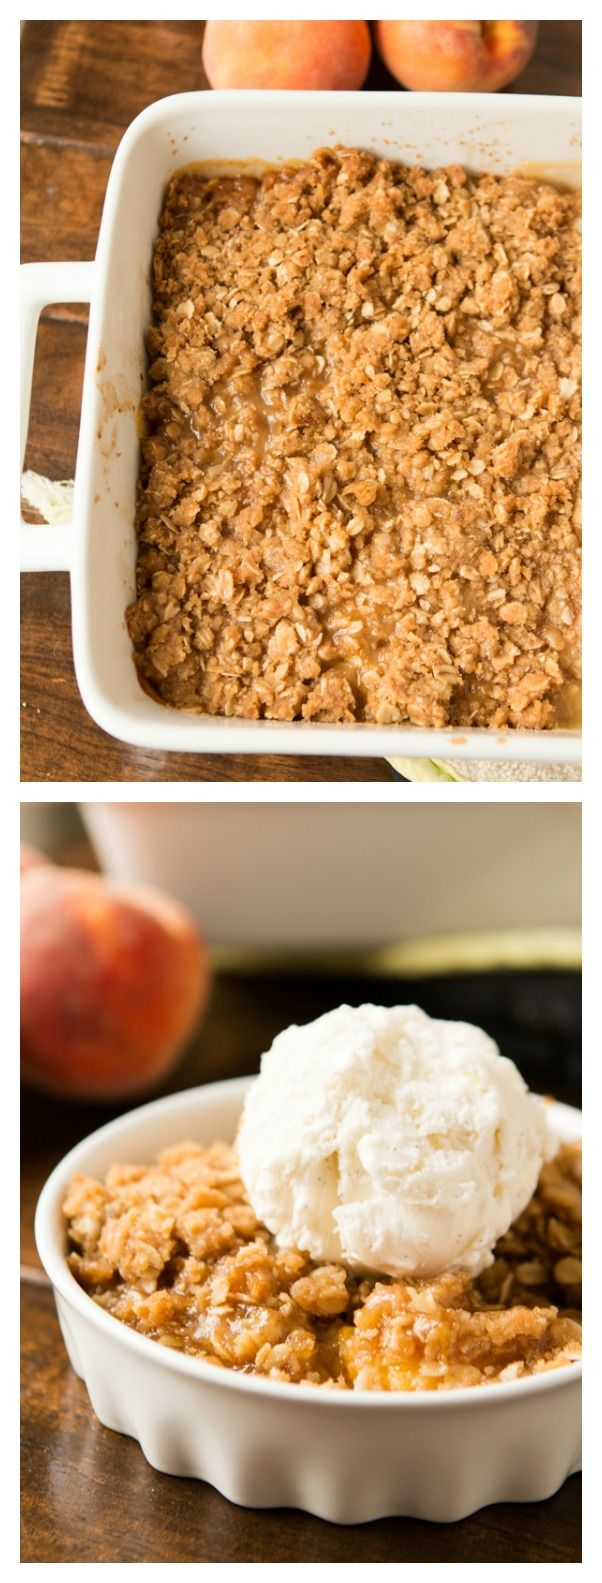 This is the best recipe we've found for peach crisp! ohsweetbasil.com